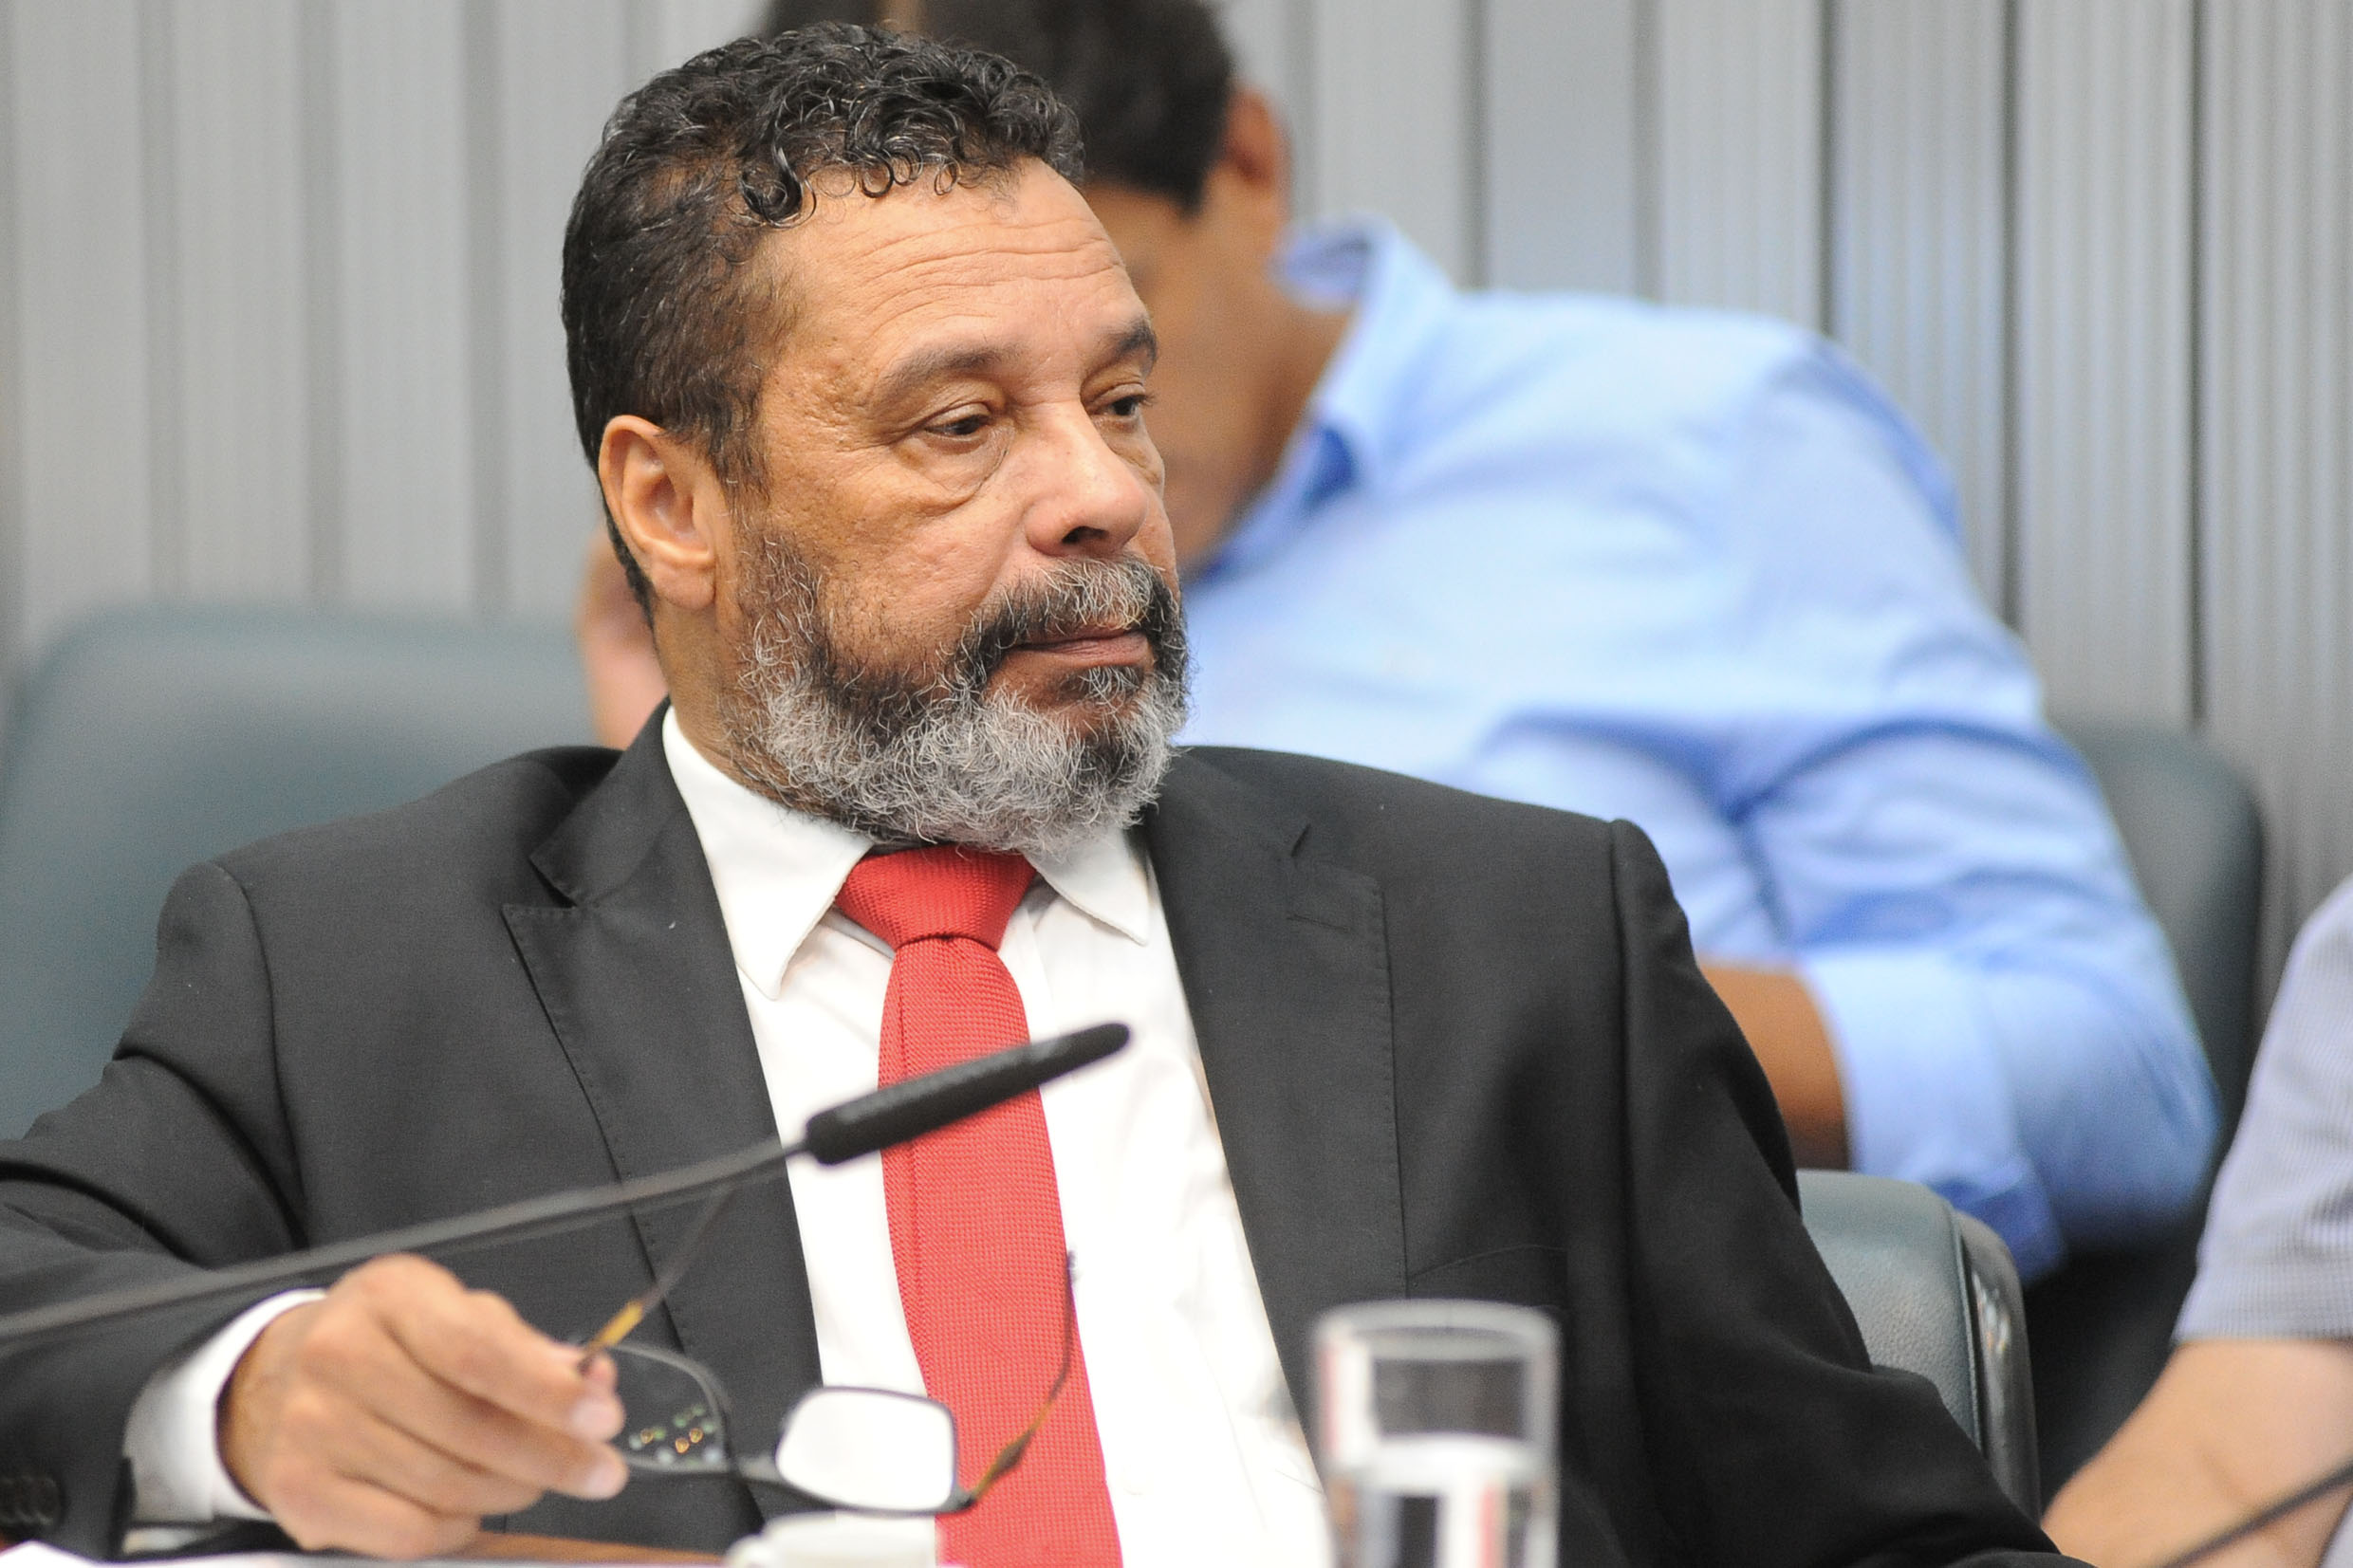 Teonilio Barba<a style='float:right' href='https://www3.al.sp.gov.br/repositorio/noticia/N-03-2018/fg218348.jpg' target=_blank><img src='/_img/material-file-download-white.png' width='14px' alt='Clique para baixar a imagem'></a>